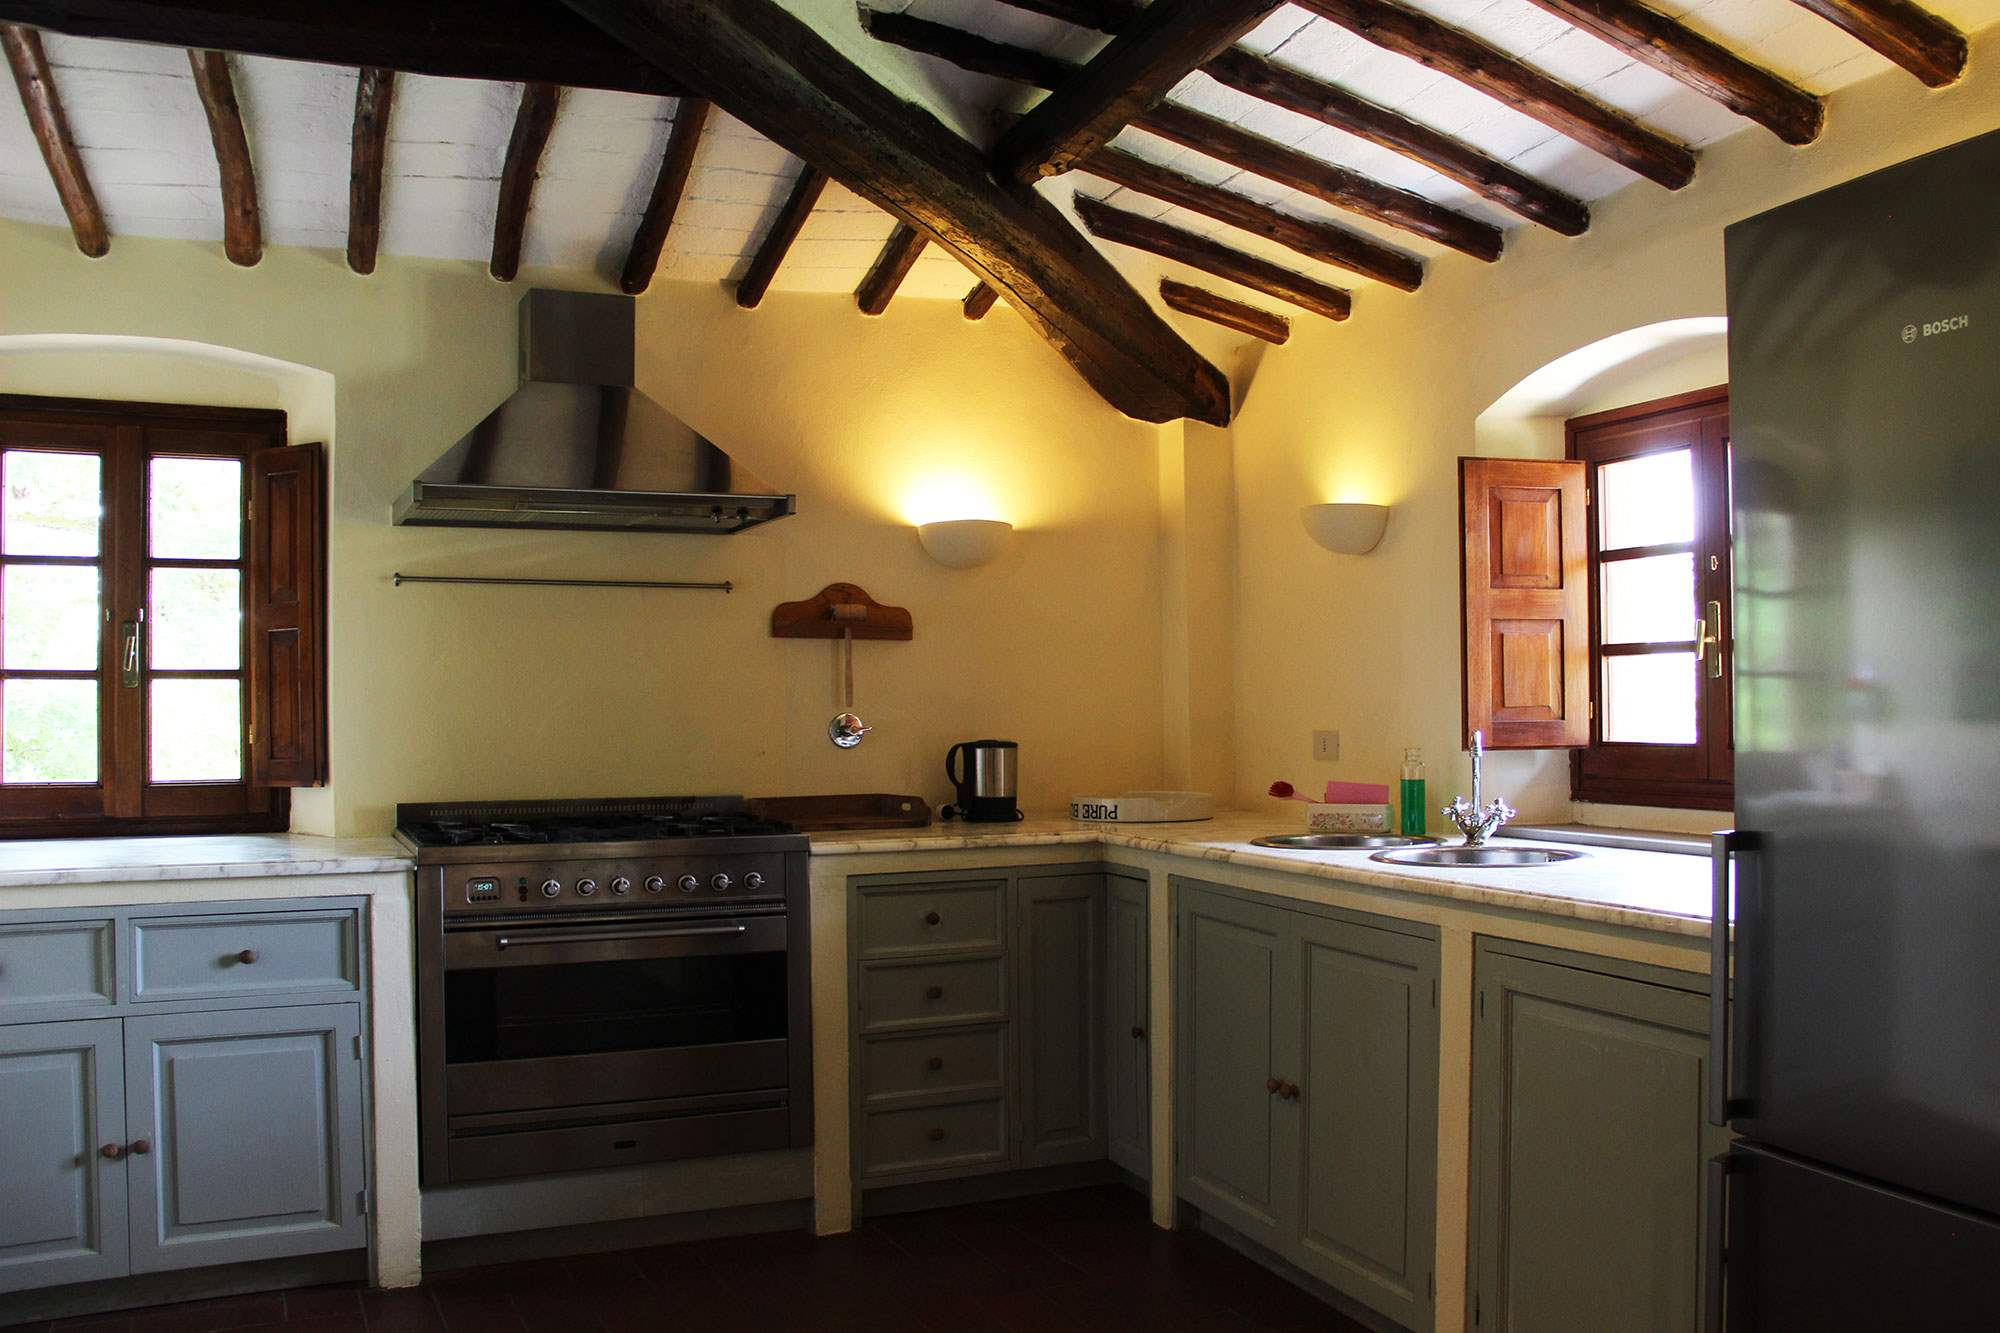 Villa Giacinto, 6 Bedroom rate, 6 bedroom villa in Chianti & Countryside, Tuscany Photo #7